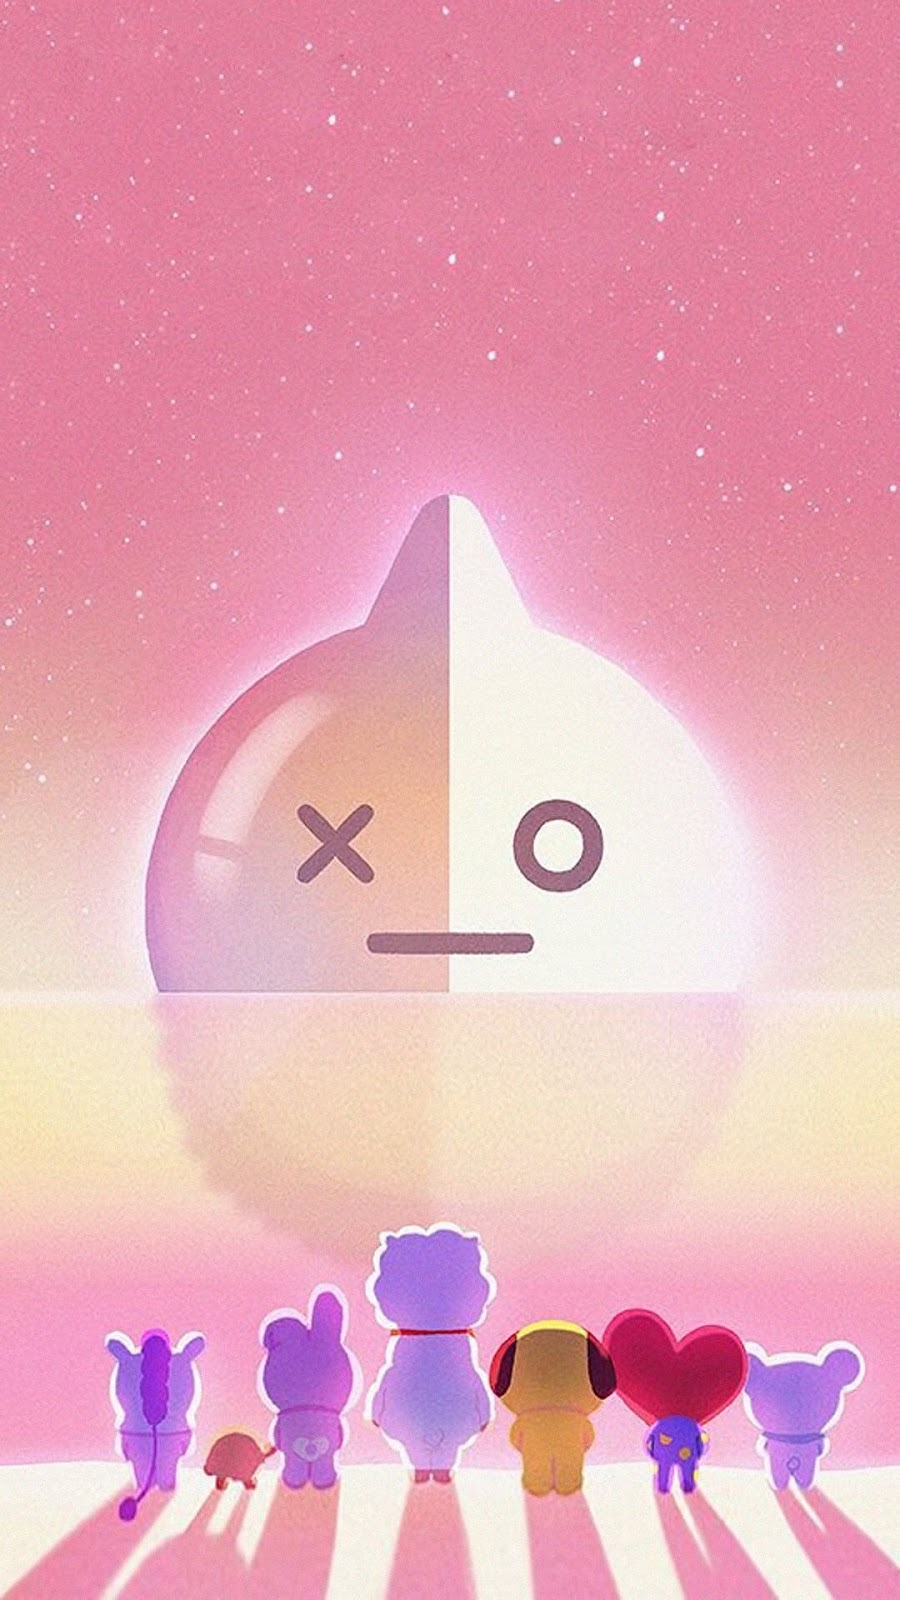 58 BT21 Wallpapers | MagOne 2016